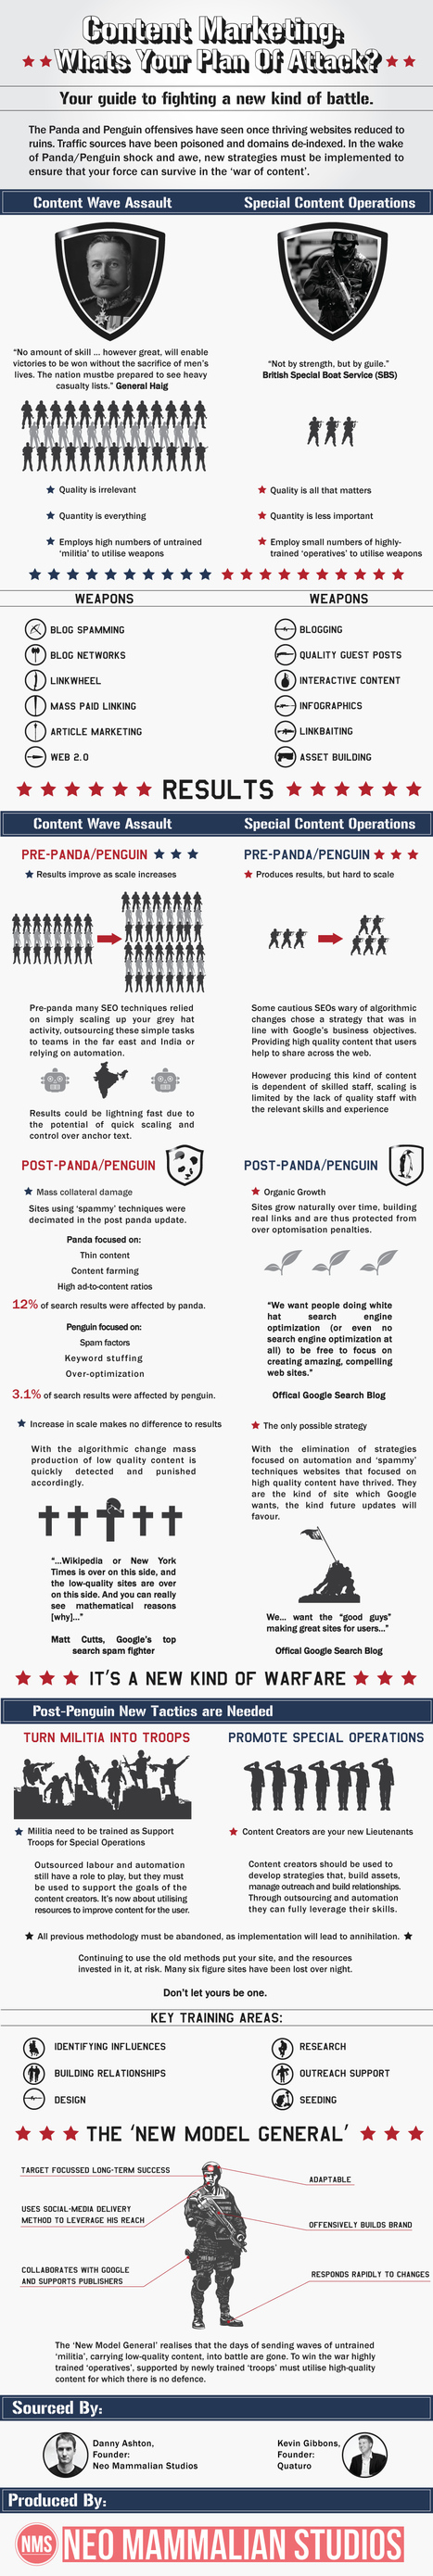 Content marketing warfare on Google Panda & Penguin, Social Media Today | Marketing, PR & Communications | Scoop.it